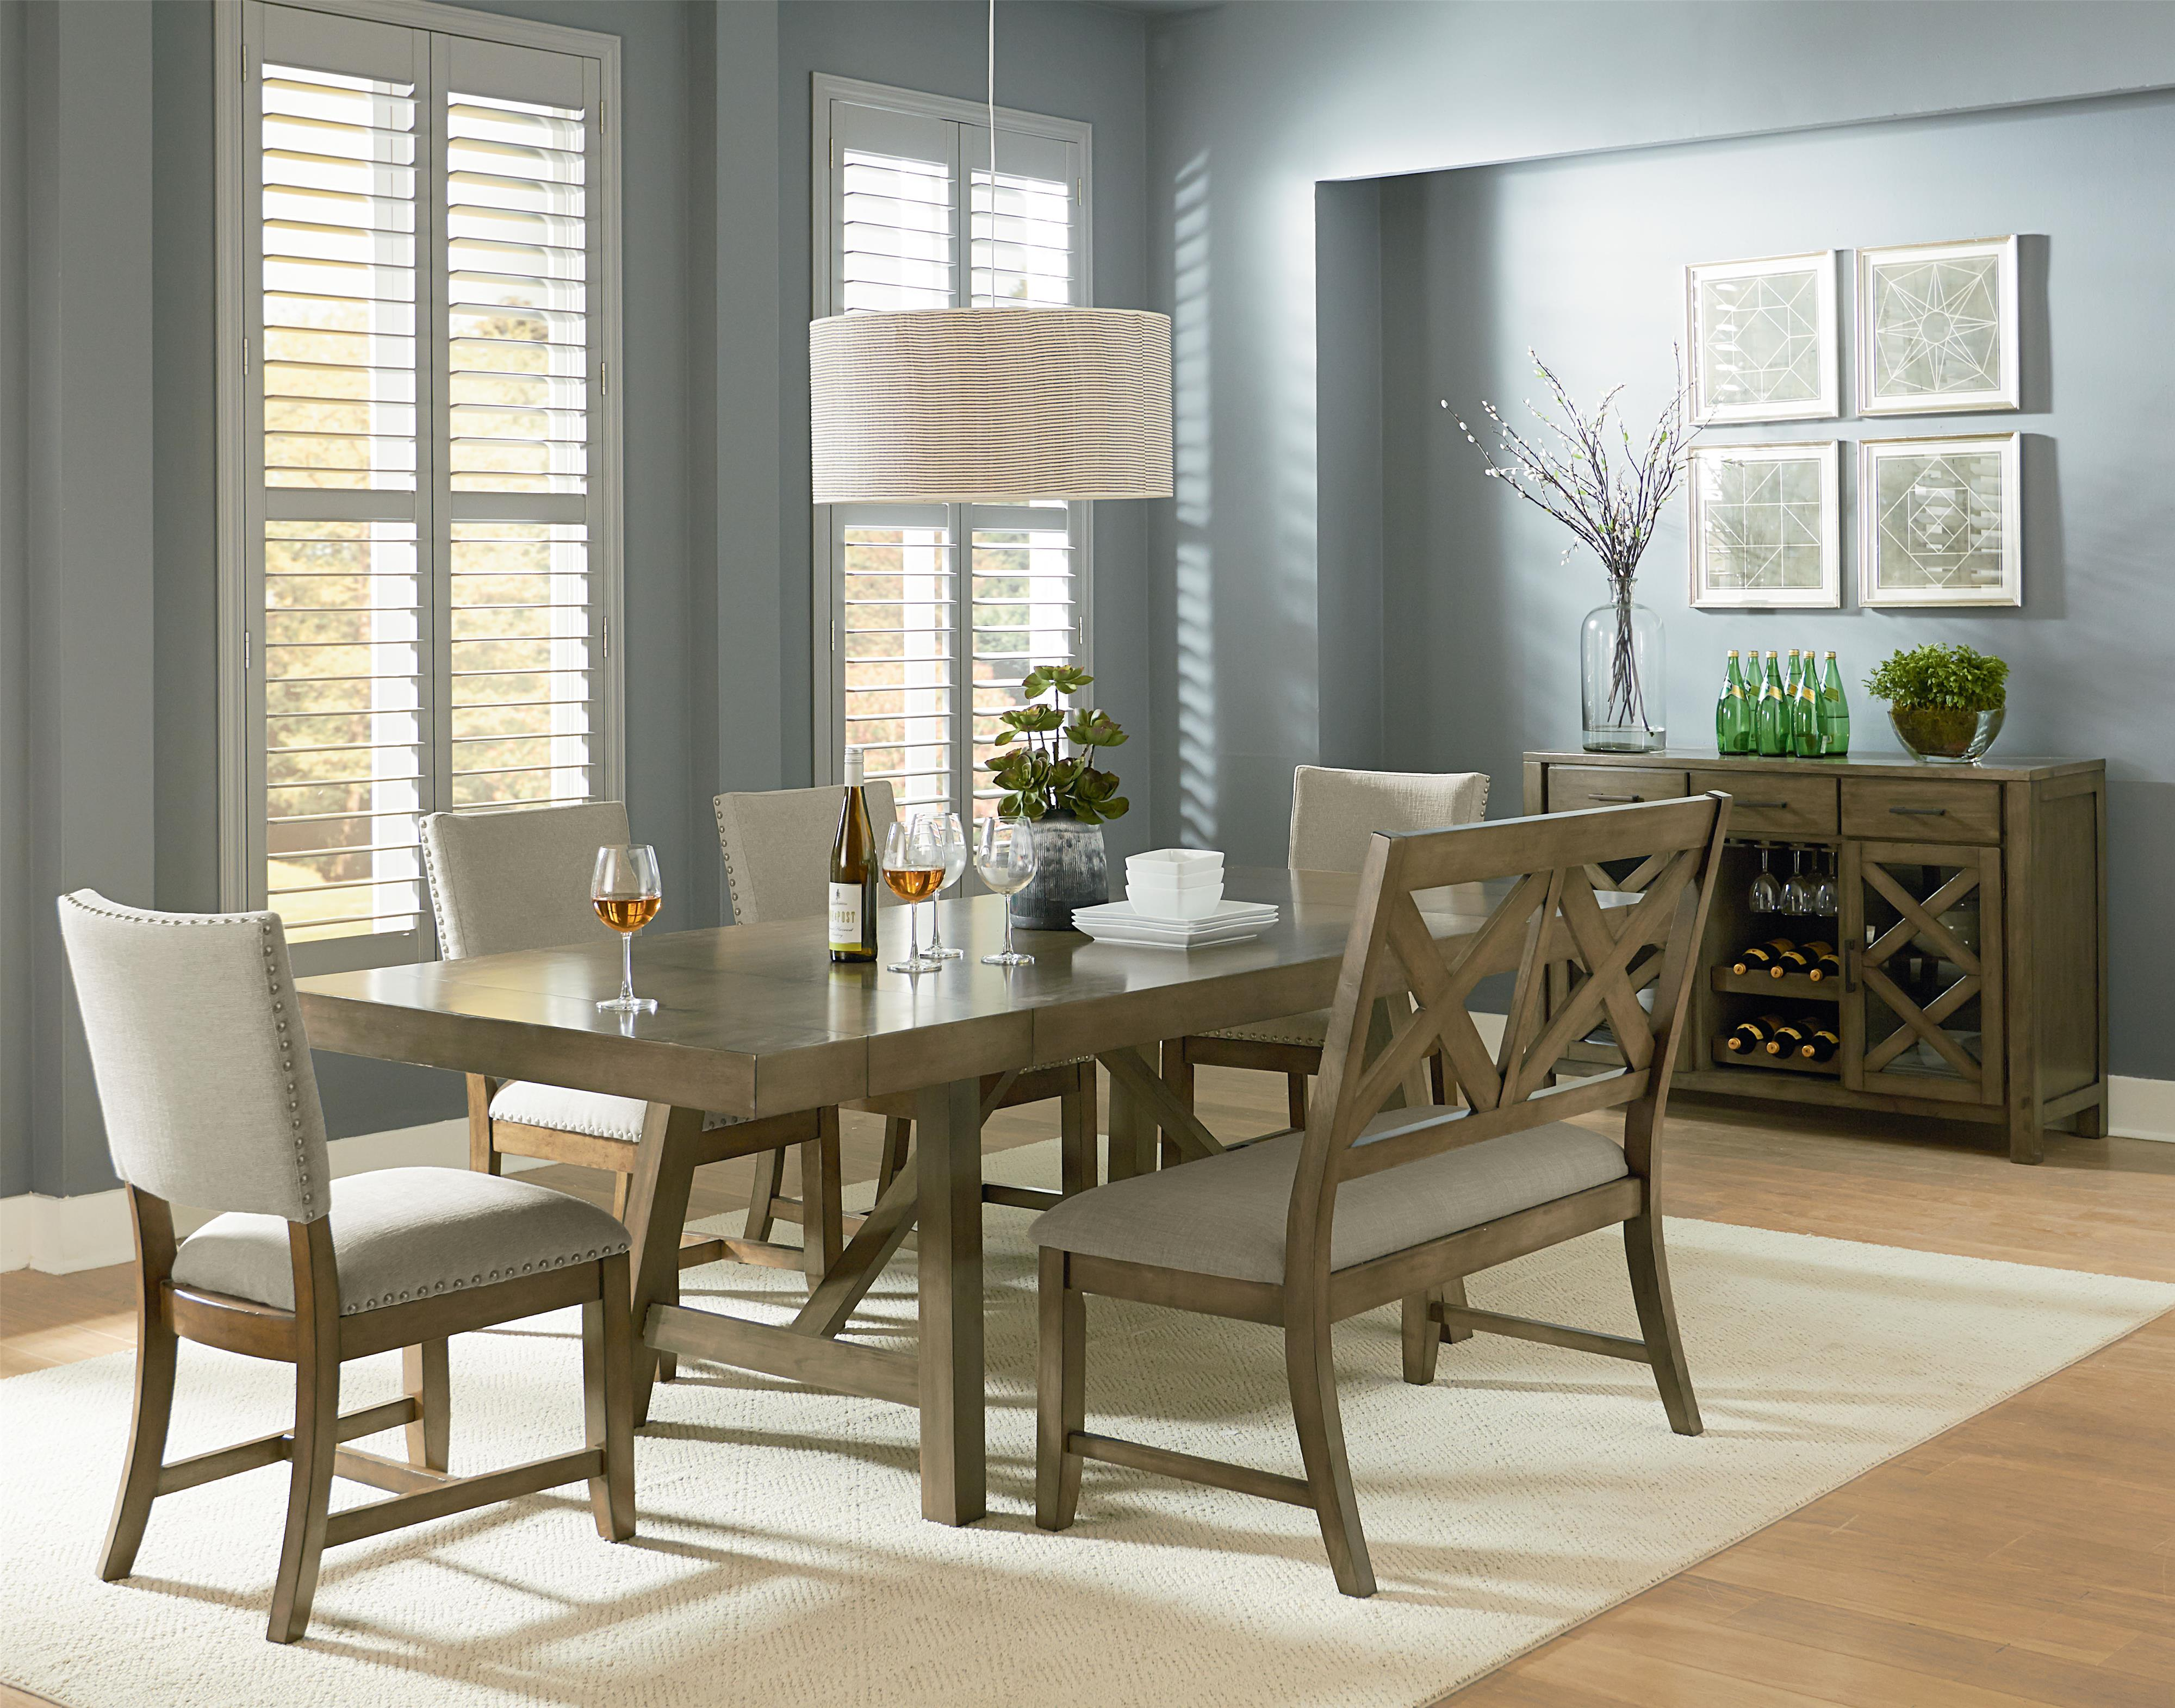 Omaha grey 6 piece trestle table dining set with dining for Dining room tables american furniture warehouse